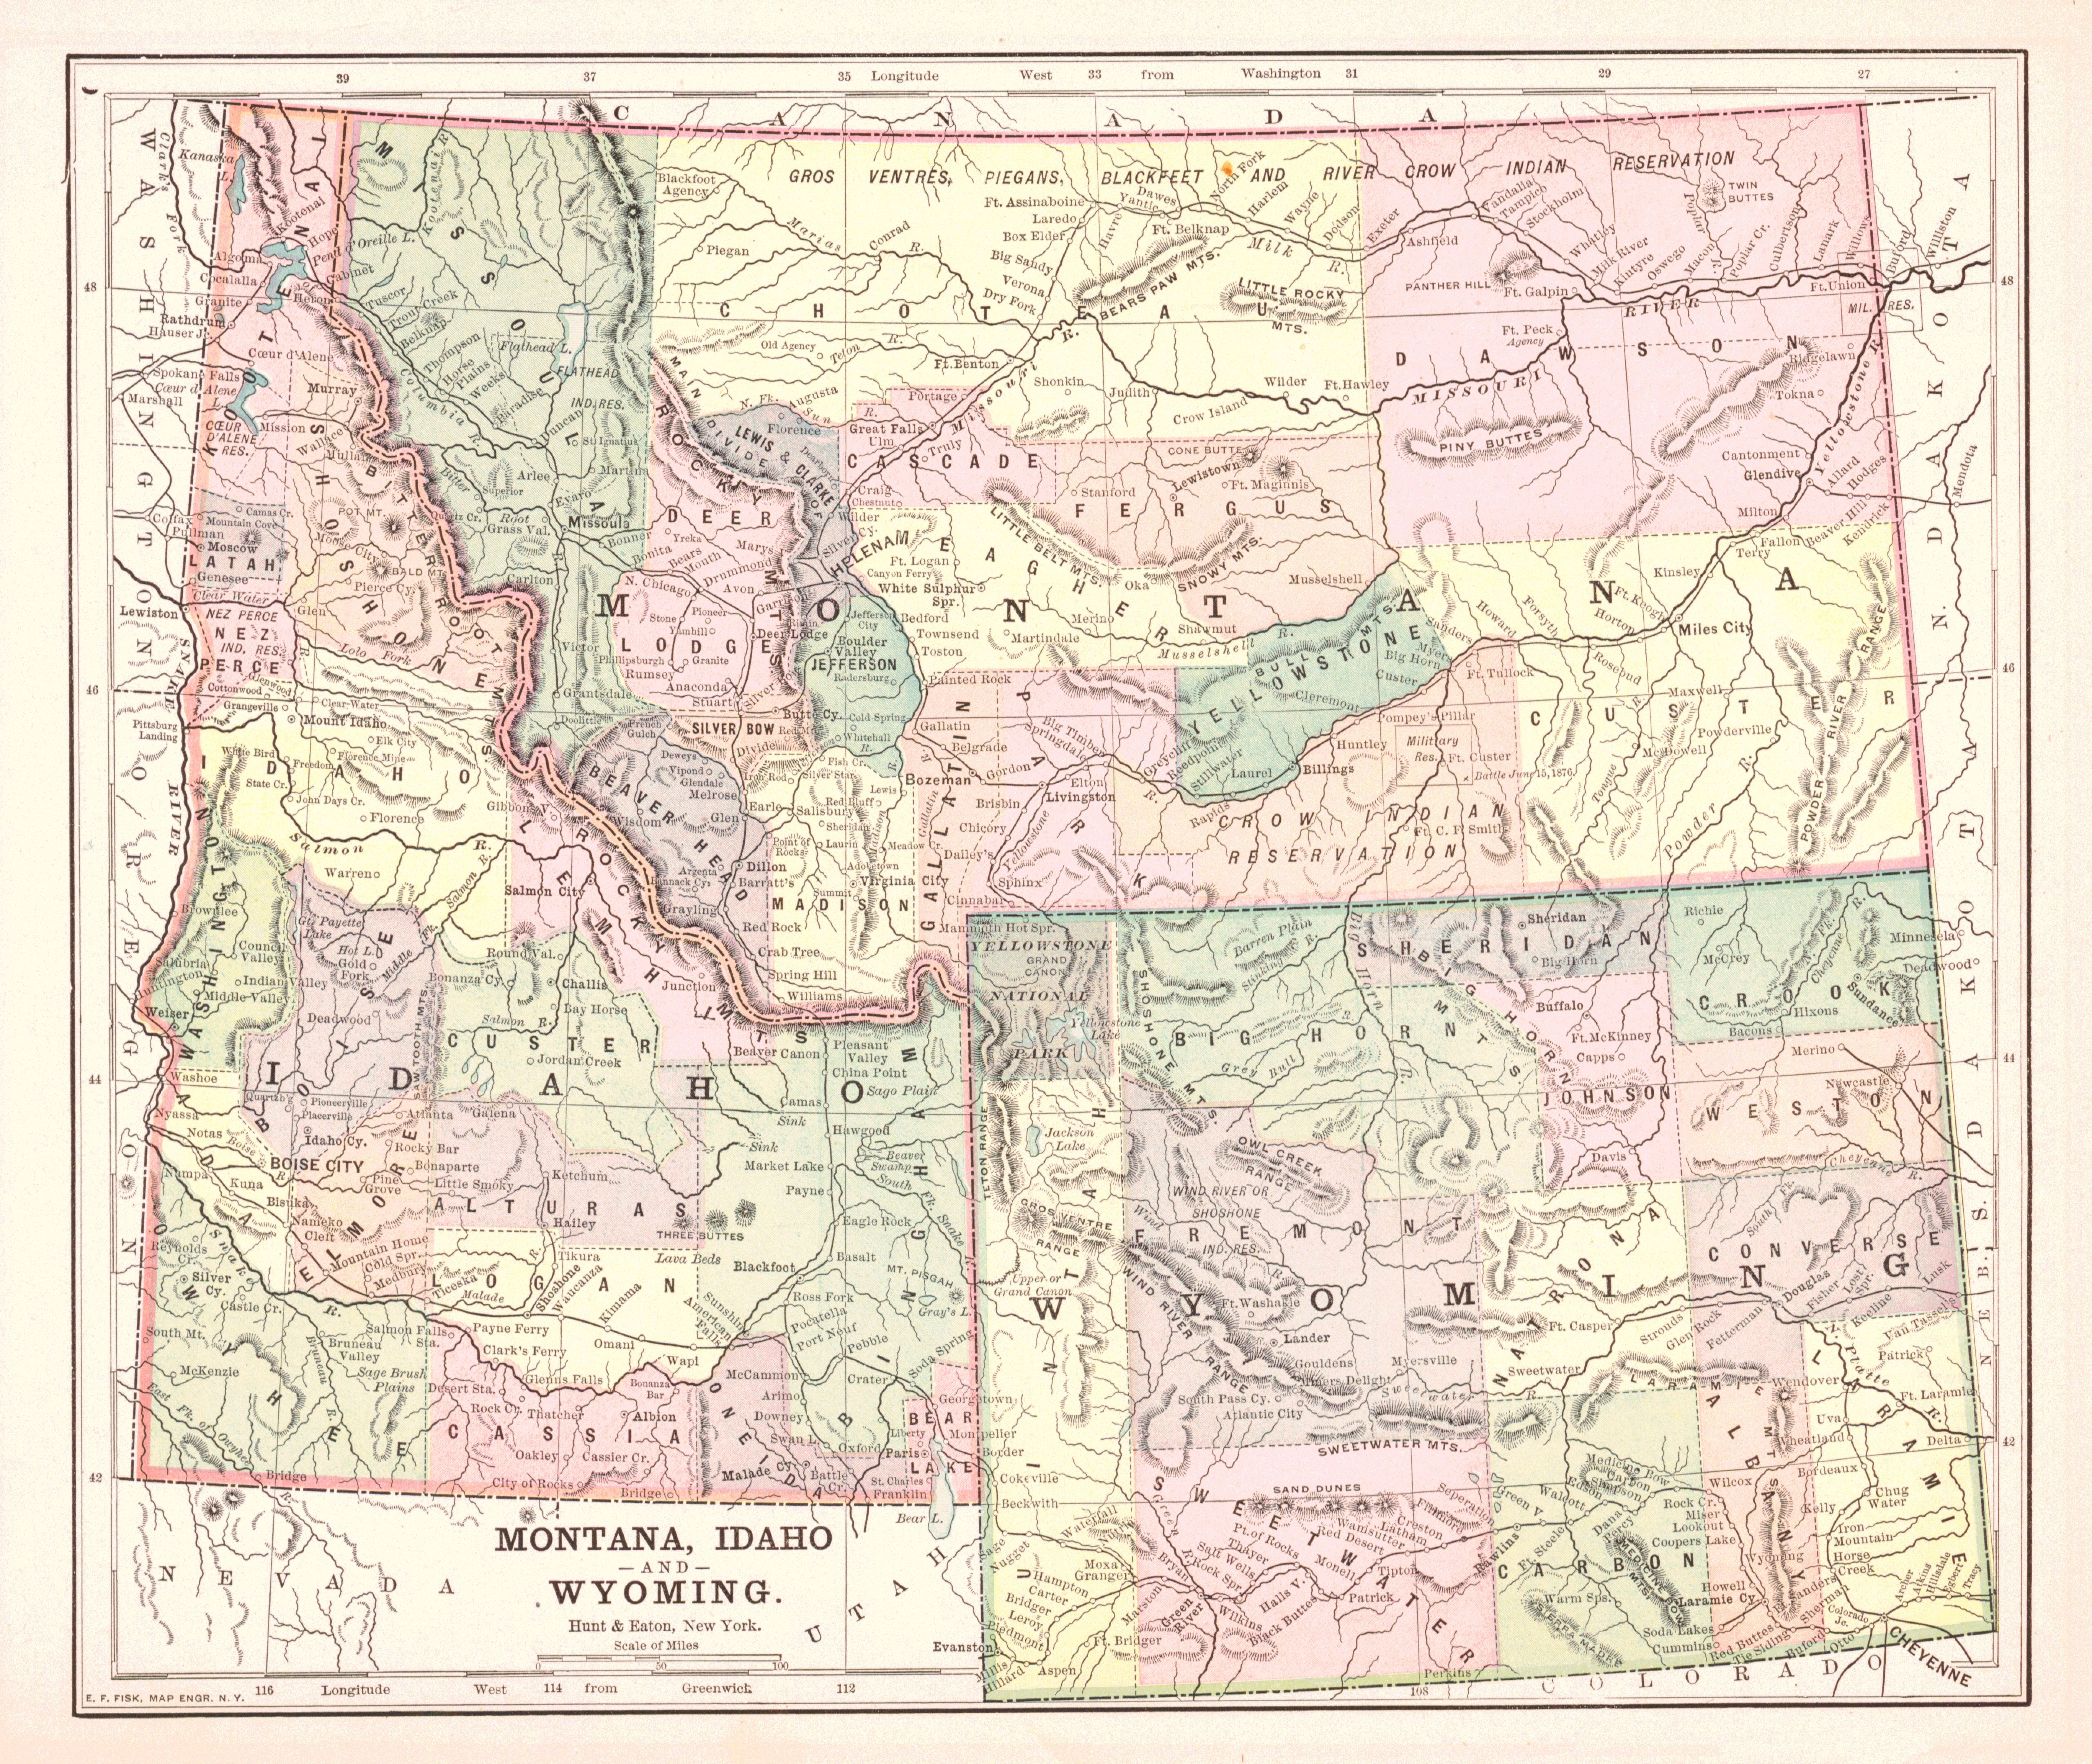 Maps Antique United States US States Wyoming on map northwest usa and canada, highway map of eastern montana, map idaho and montana, map of browning montana area, map washington state and montana, map oregon and montana, map of east helena montana, map of wyoming indian reservations, map of wyoming road map, rocky boy indian reservation montana,